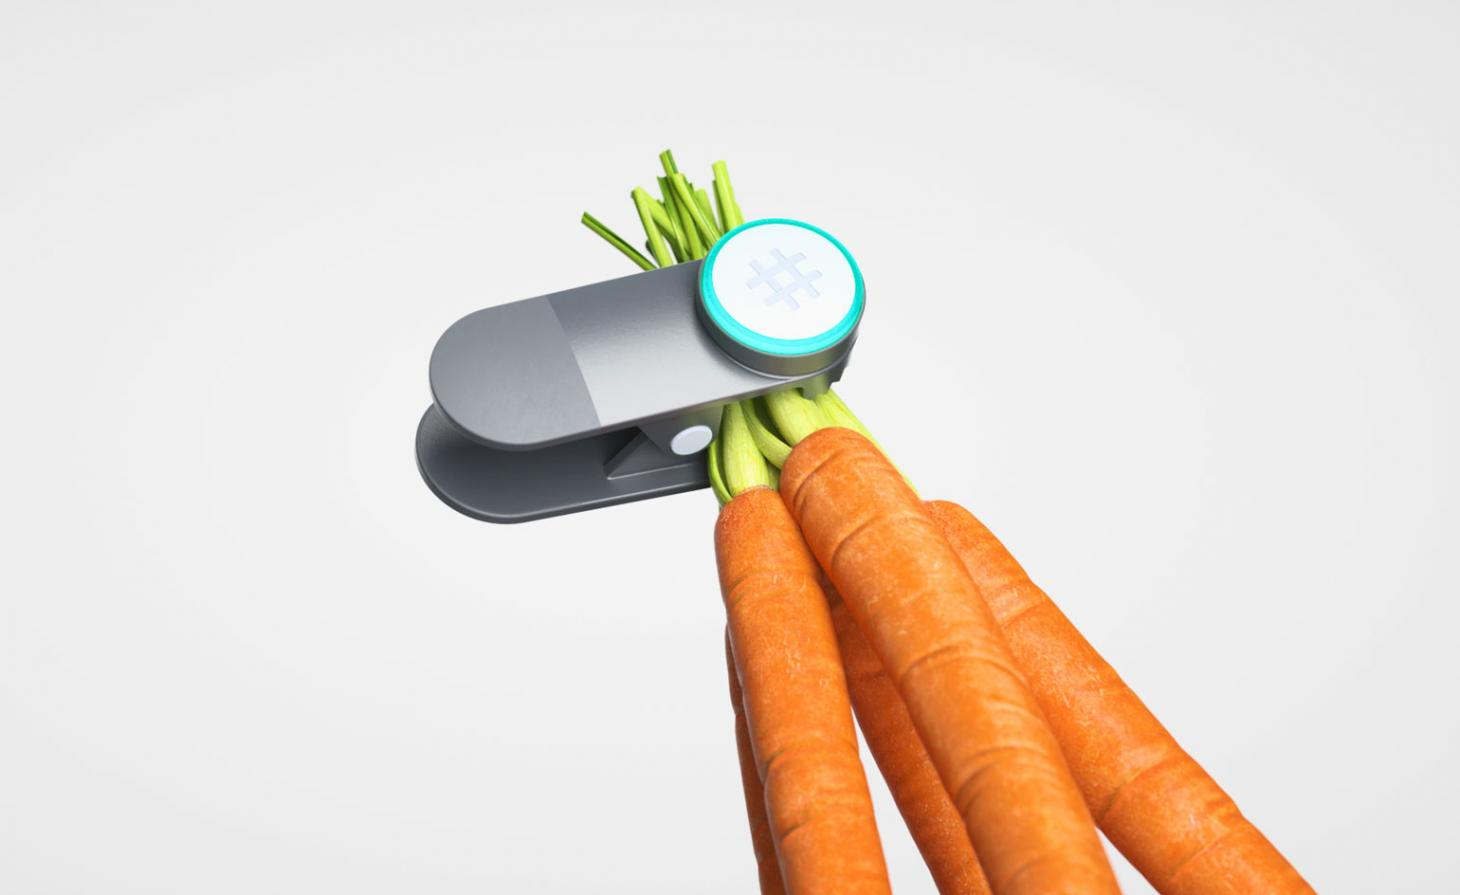 Ovie Smart Tag with carrots, new connected kitchen technology